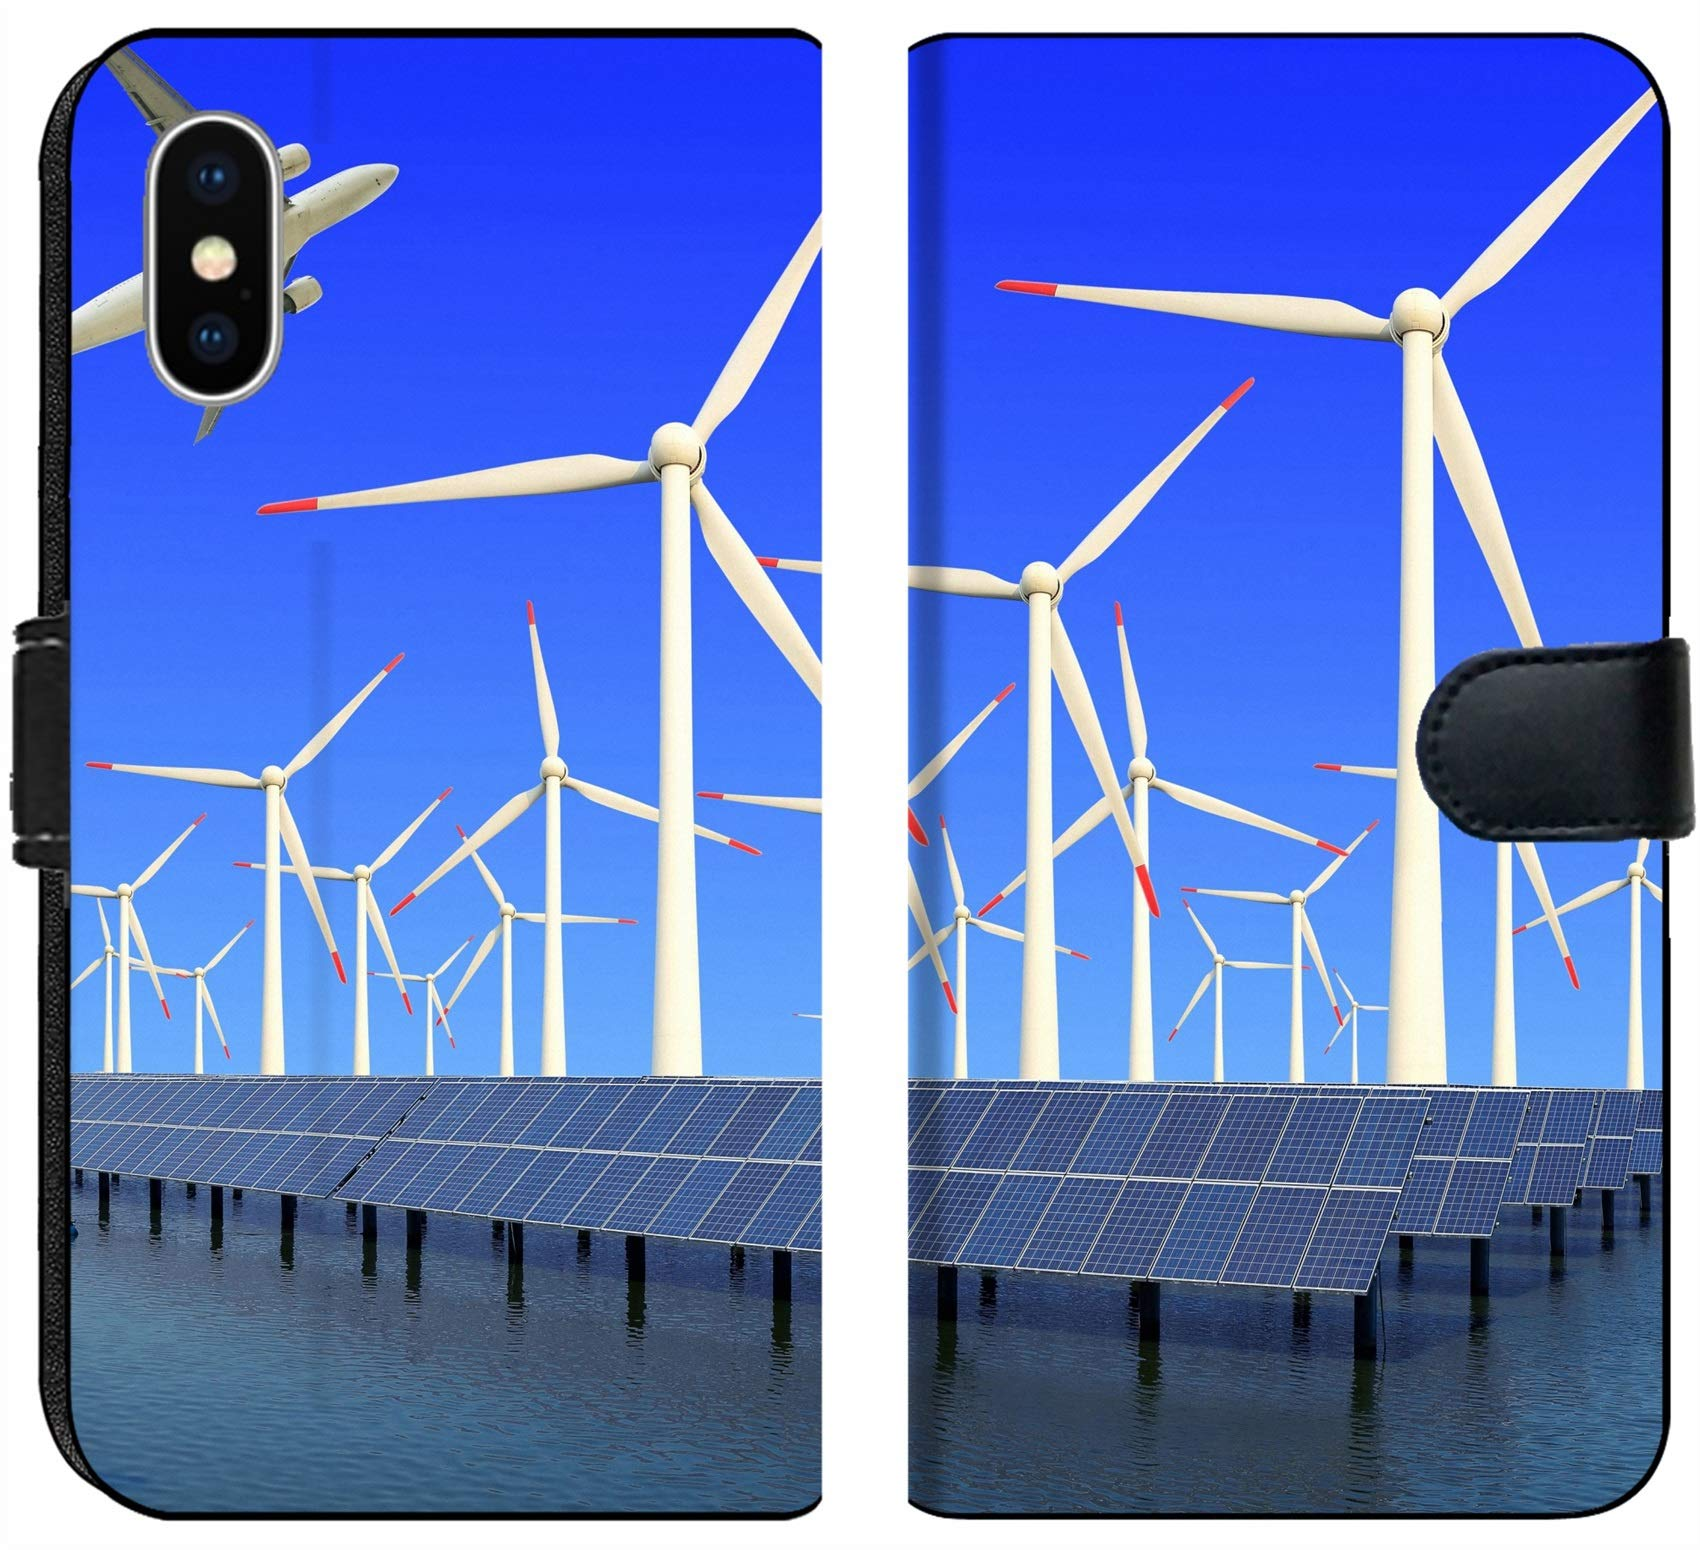 Apple iPhone X Flip Fabric Wallet Case Image ID 19576484 Aircraft is Flying in eco Power of Wind turbines and Solar Panel at c